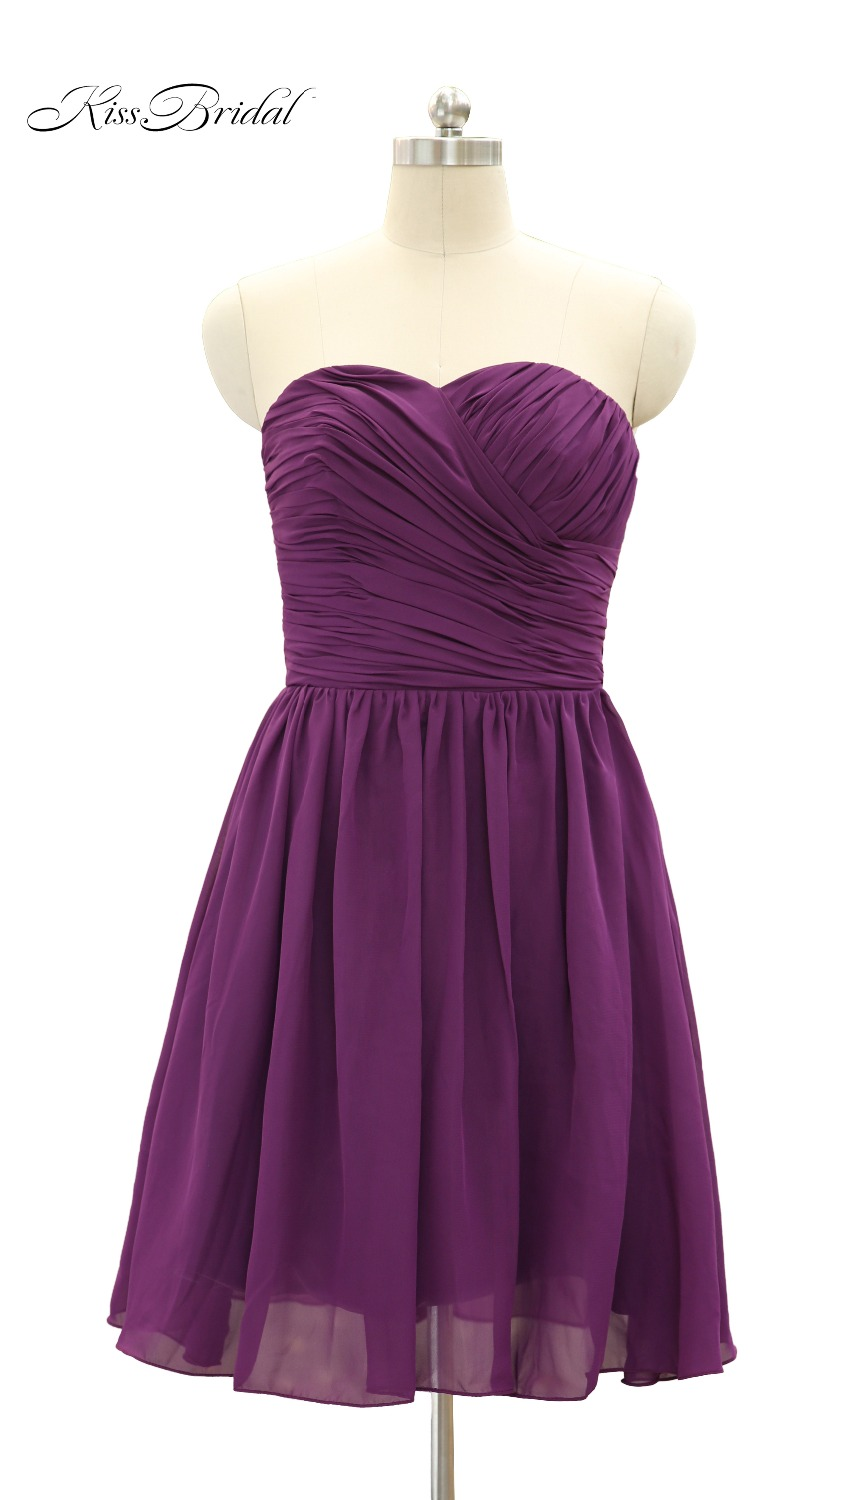 Robe   Cocktail   Party   Dresses   Elegant Sweetheart Sleeveless Zipper Back A-Line Short   Cocktail     Dresses   Prom Gowns